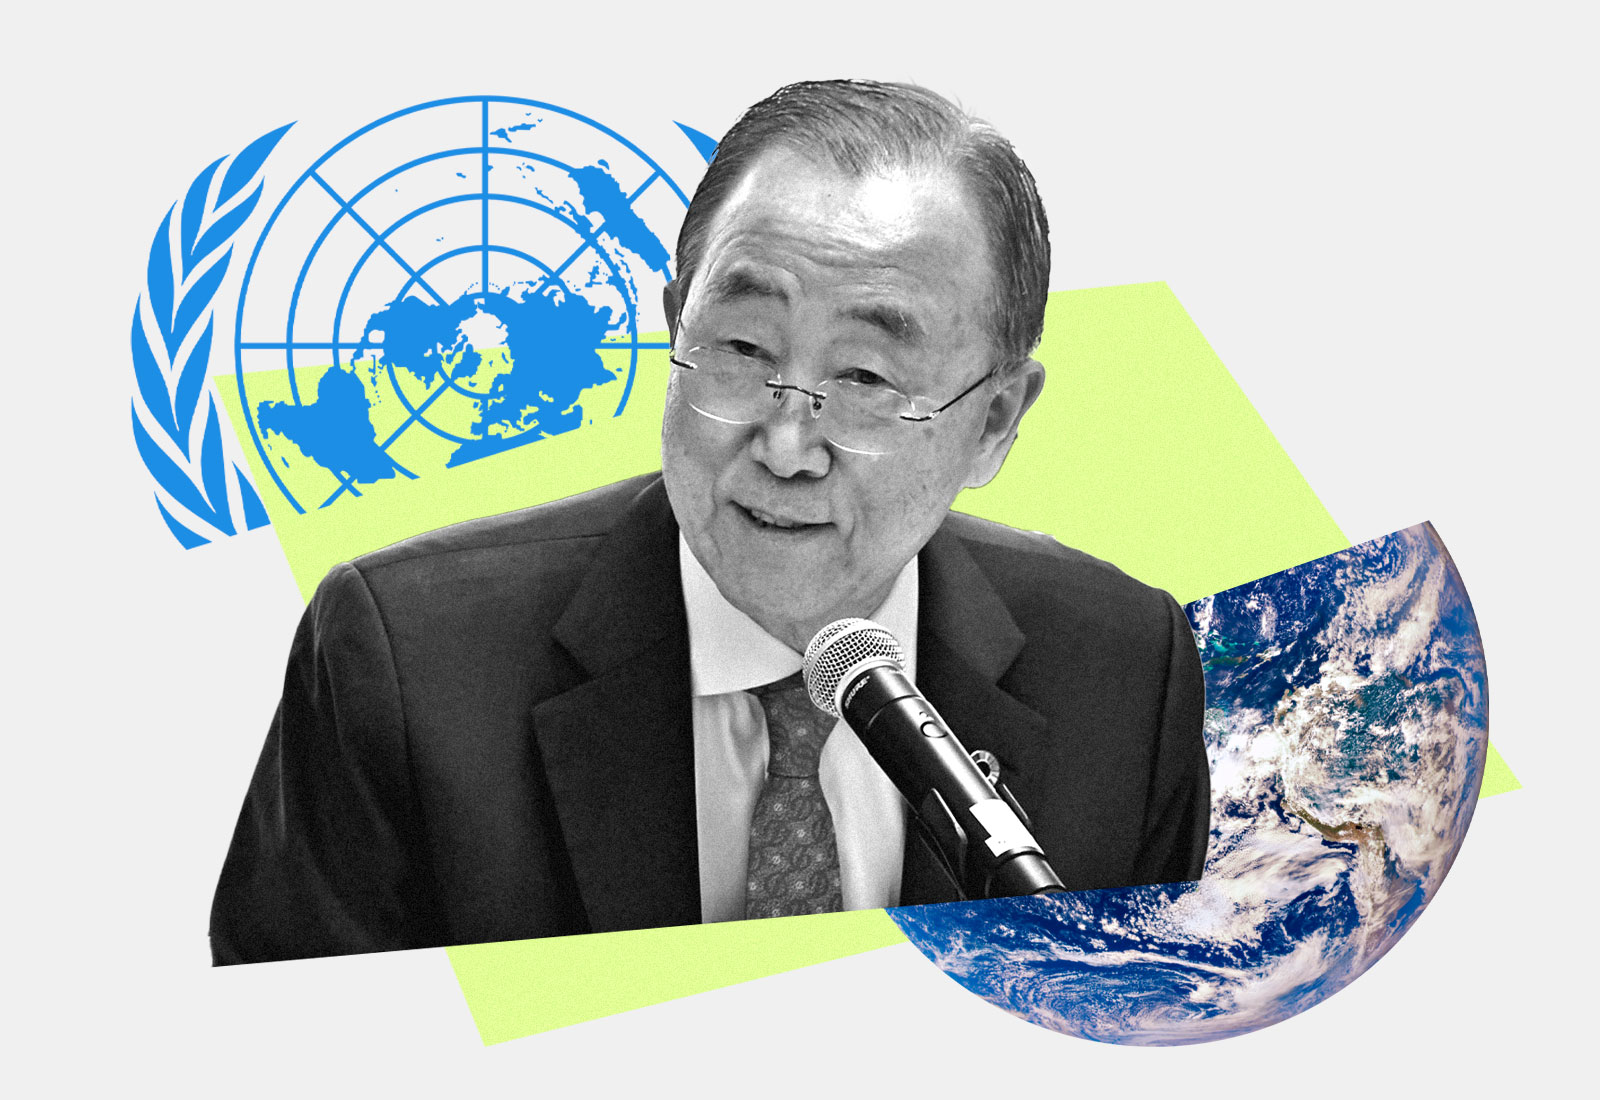 Collage: Ban Ki-Moon with the United Nations logo and planet Earth behind him